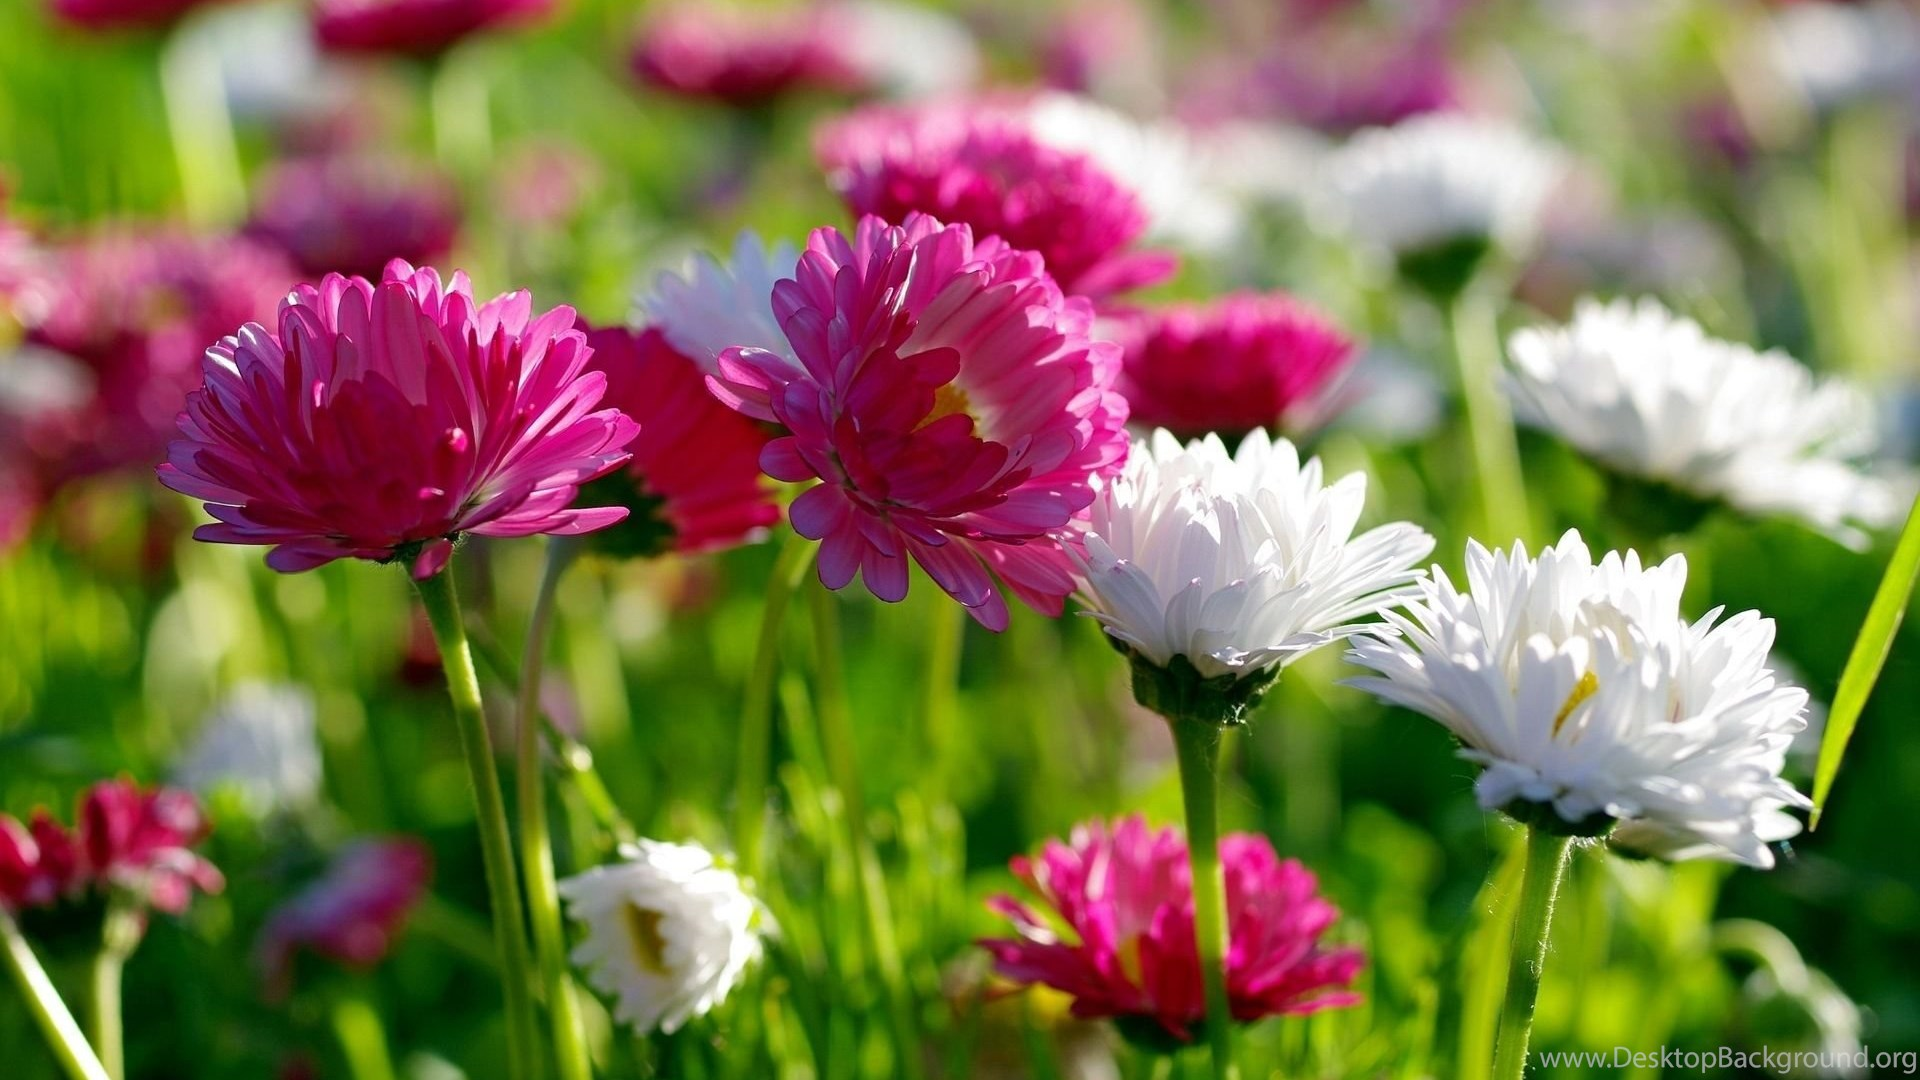 Awesome Spring Flowers Hd Wallpapers Free Download Desktop Background